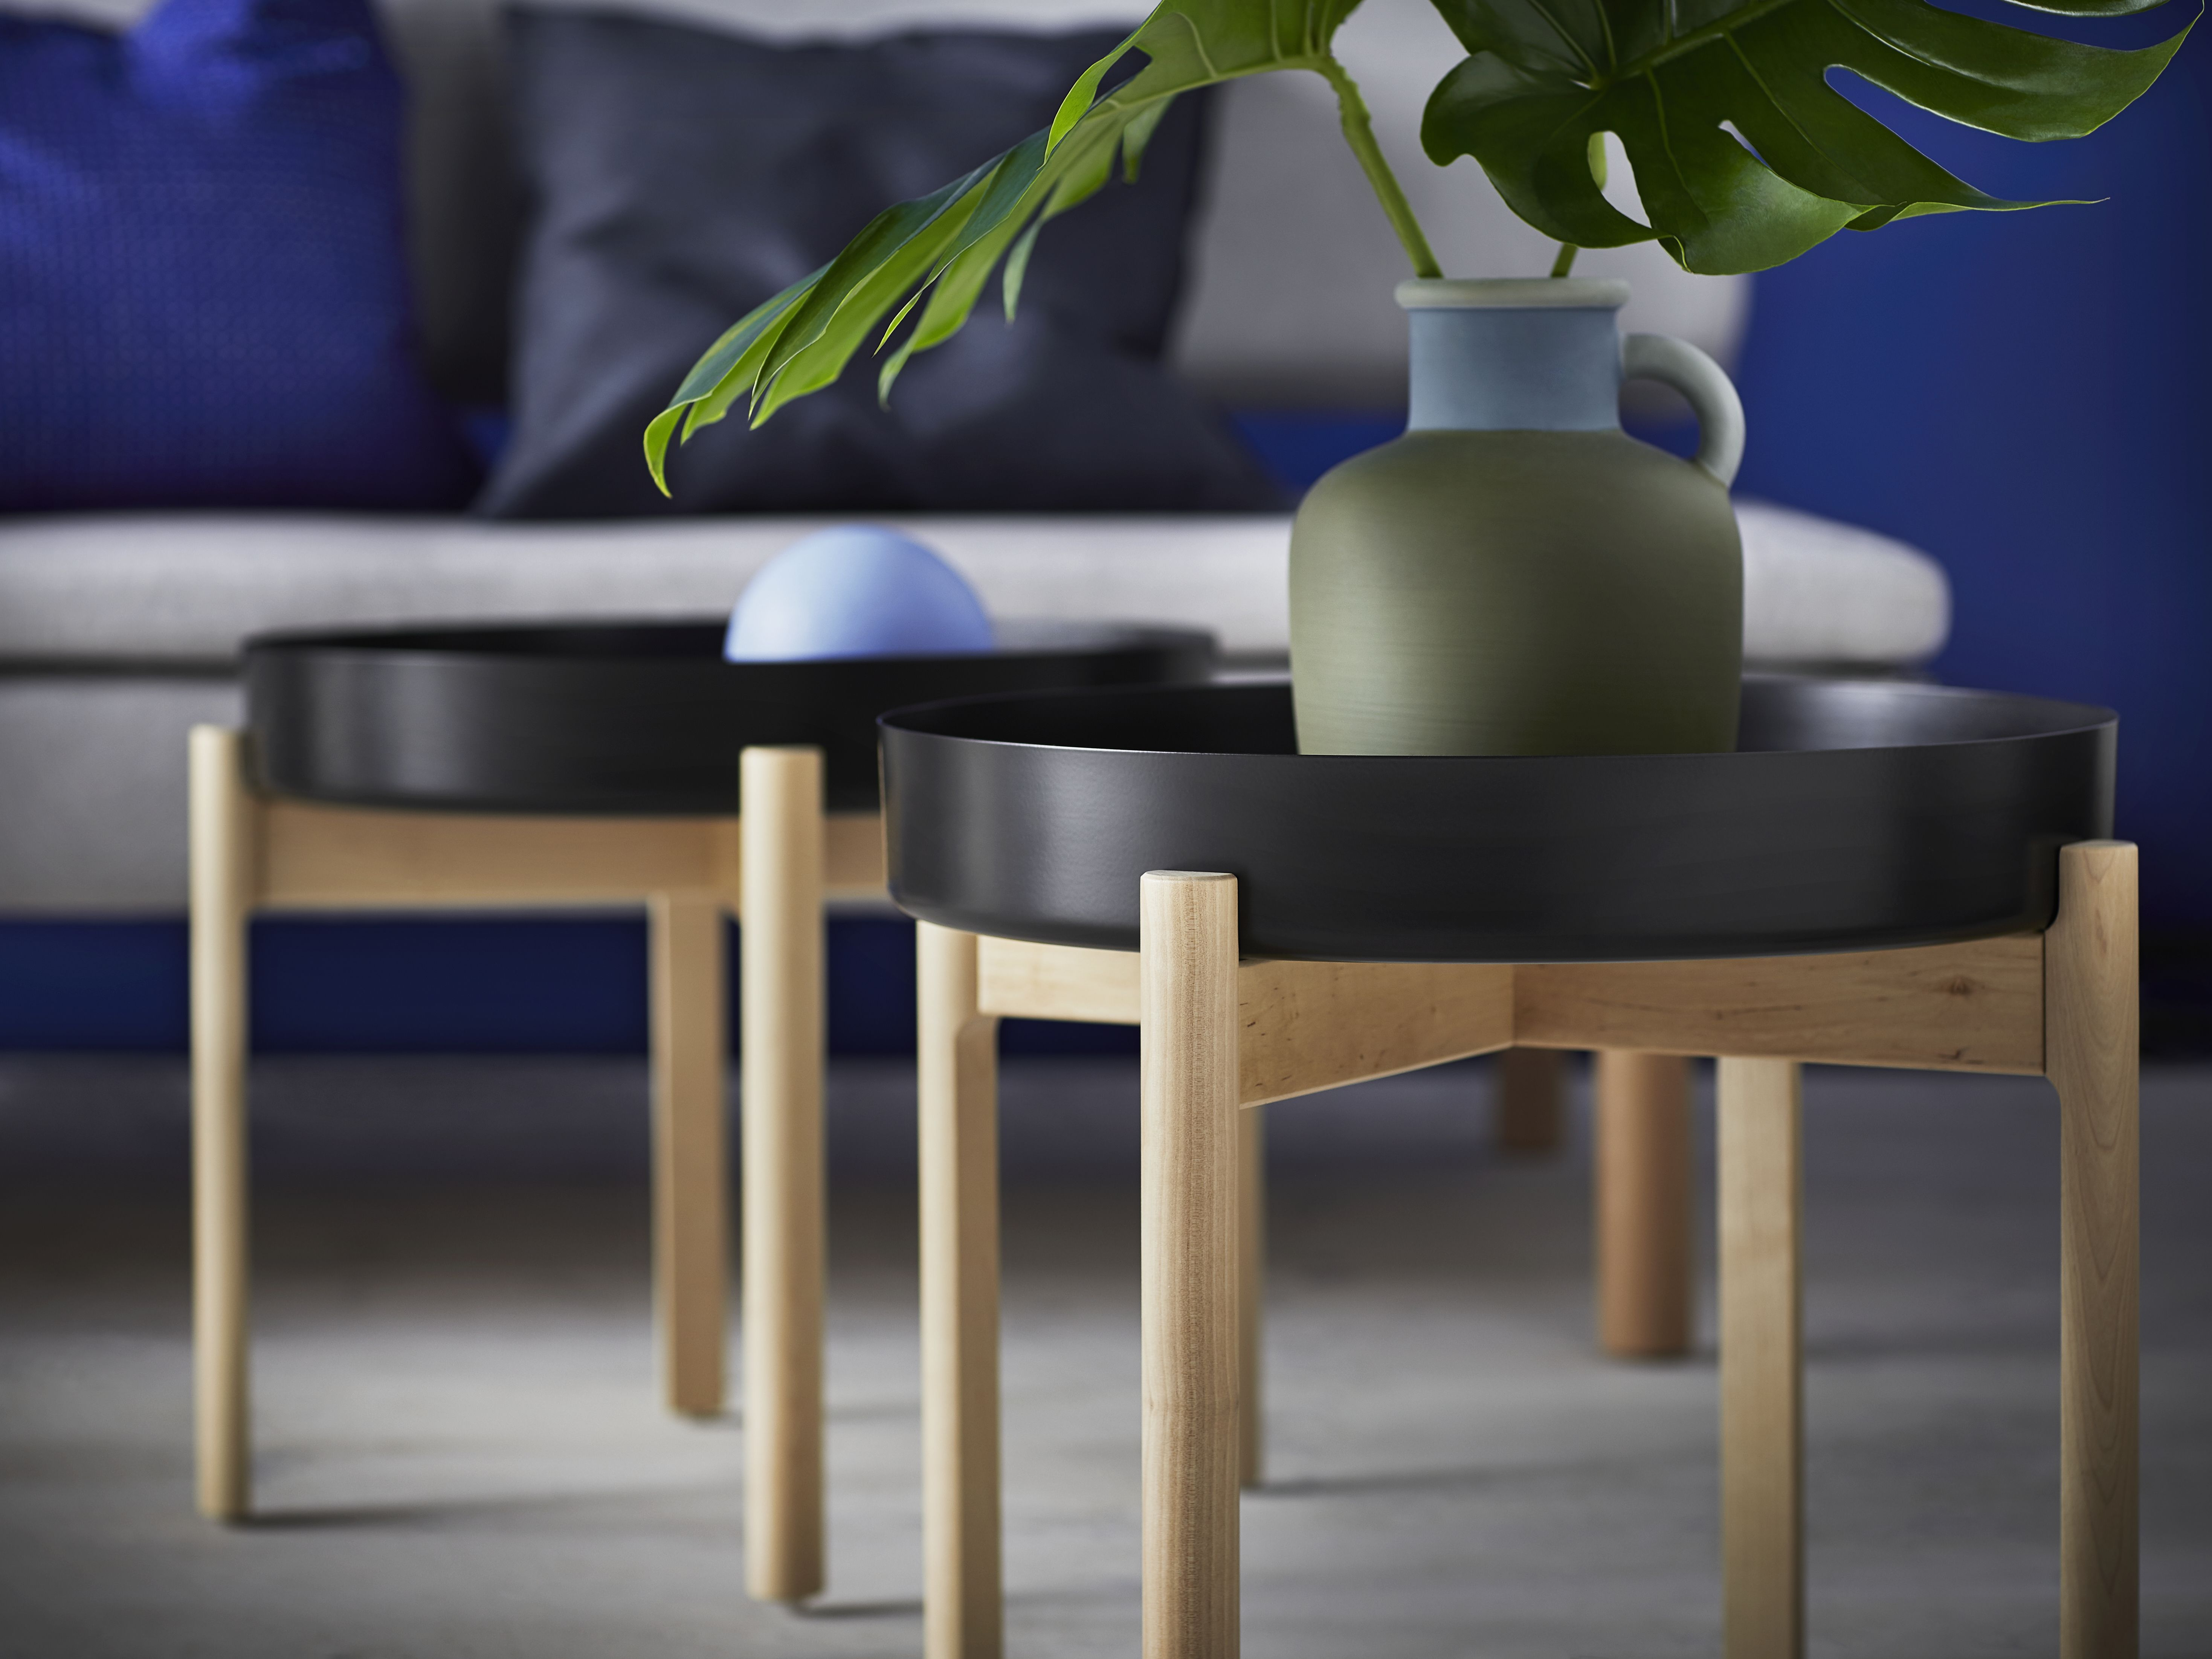 Couchtisch Ypperlig This Ikea Collab Is Finally Here It S Stunning Ecolution